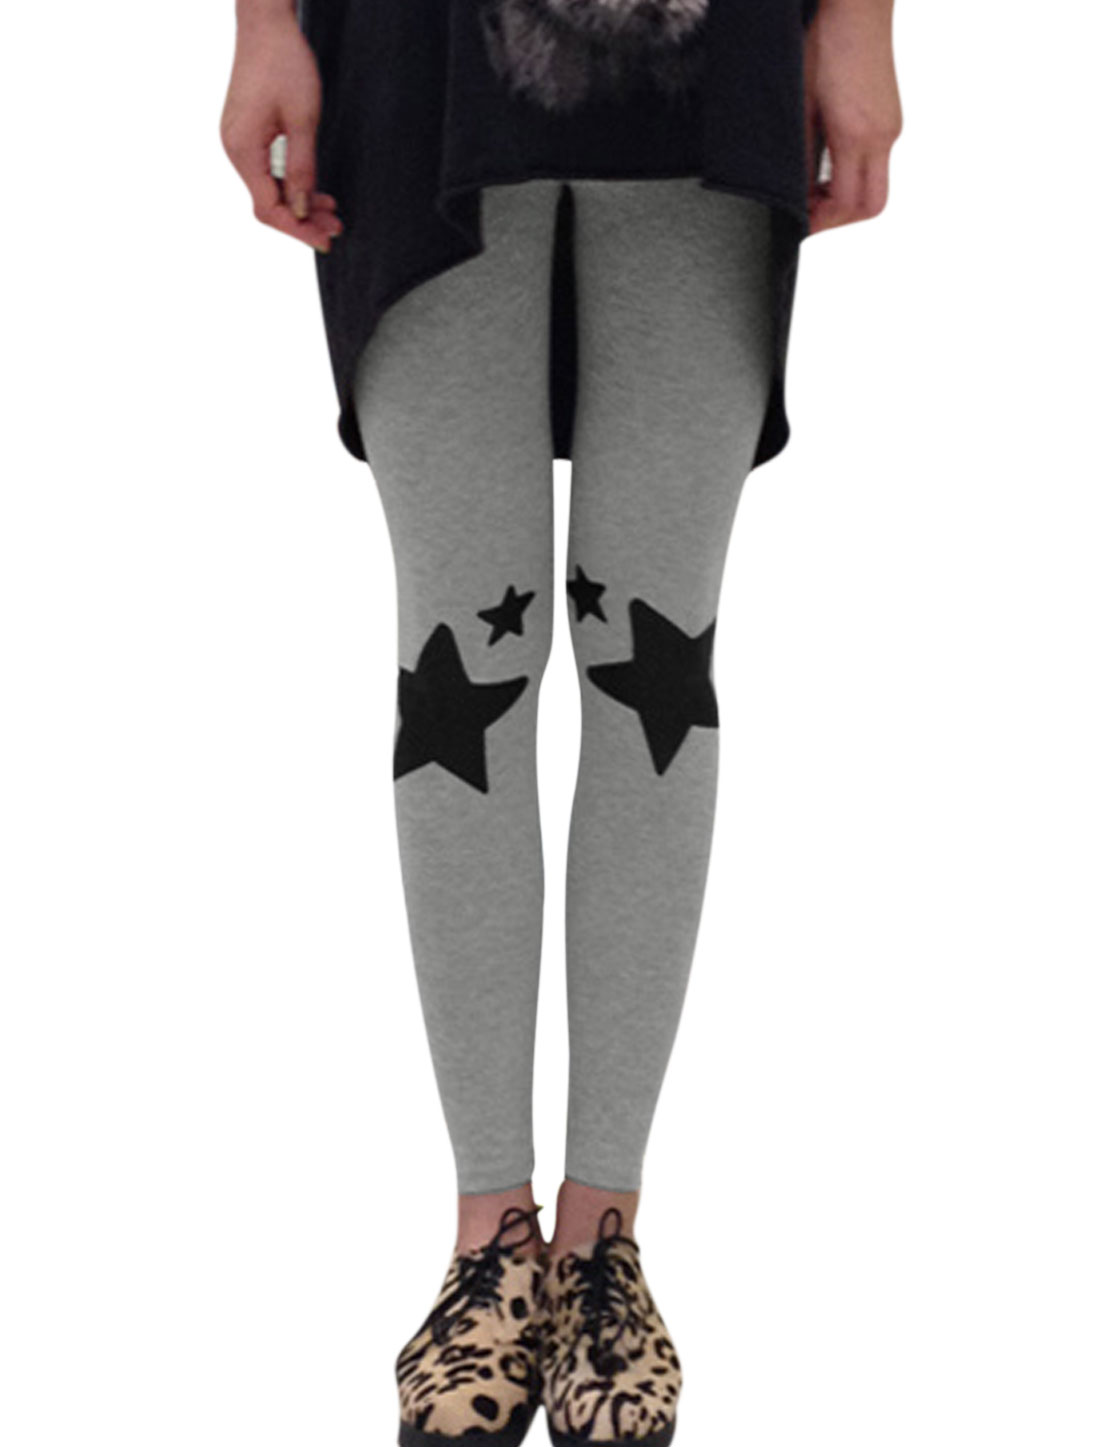 Stretchy Stars Prints Cozy Fit Light Gray Leggings for Woman XS